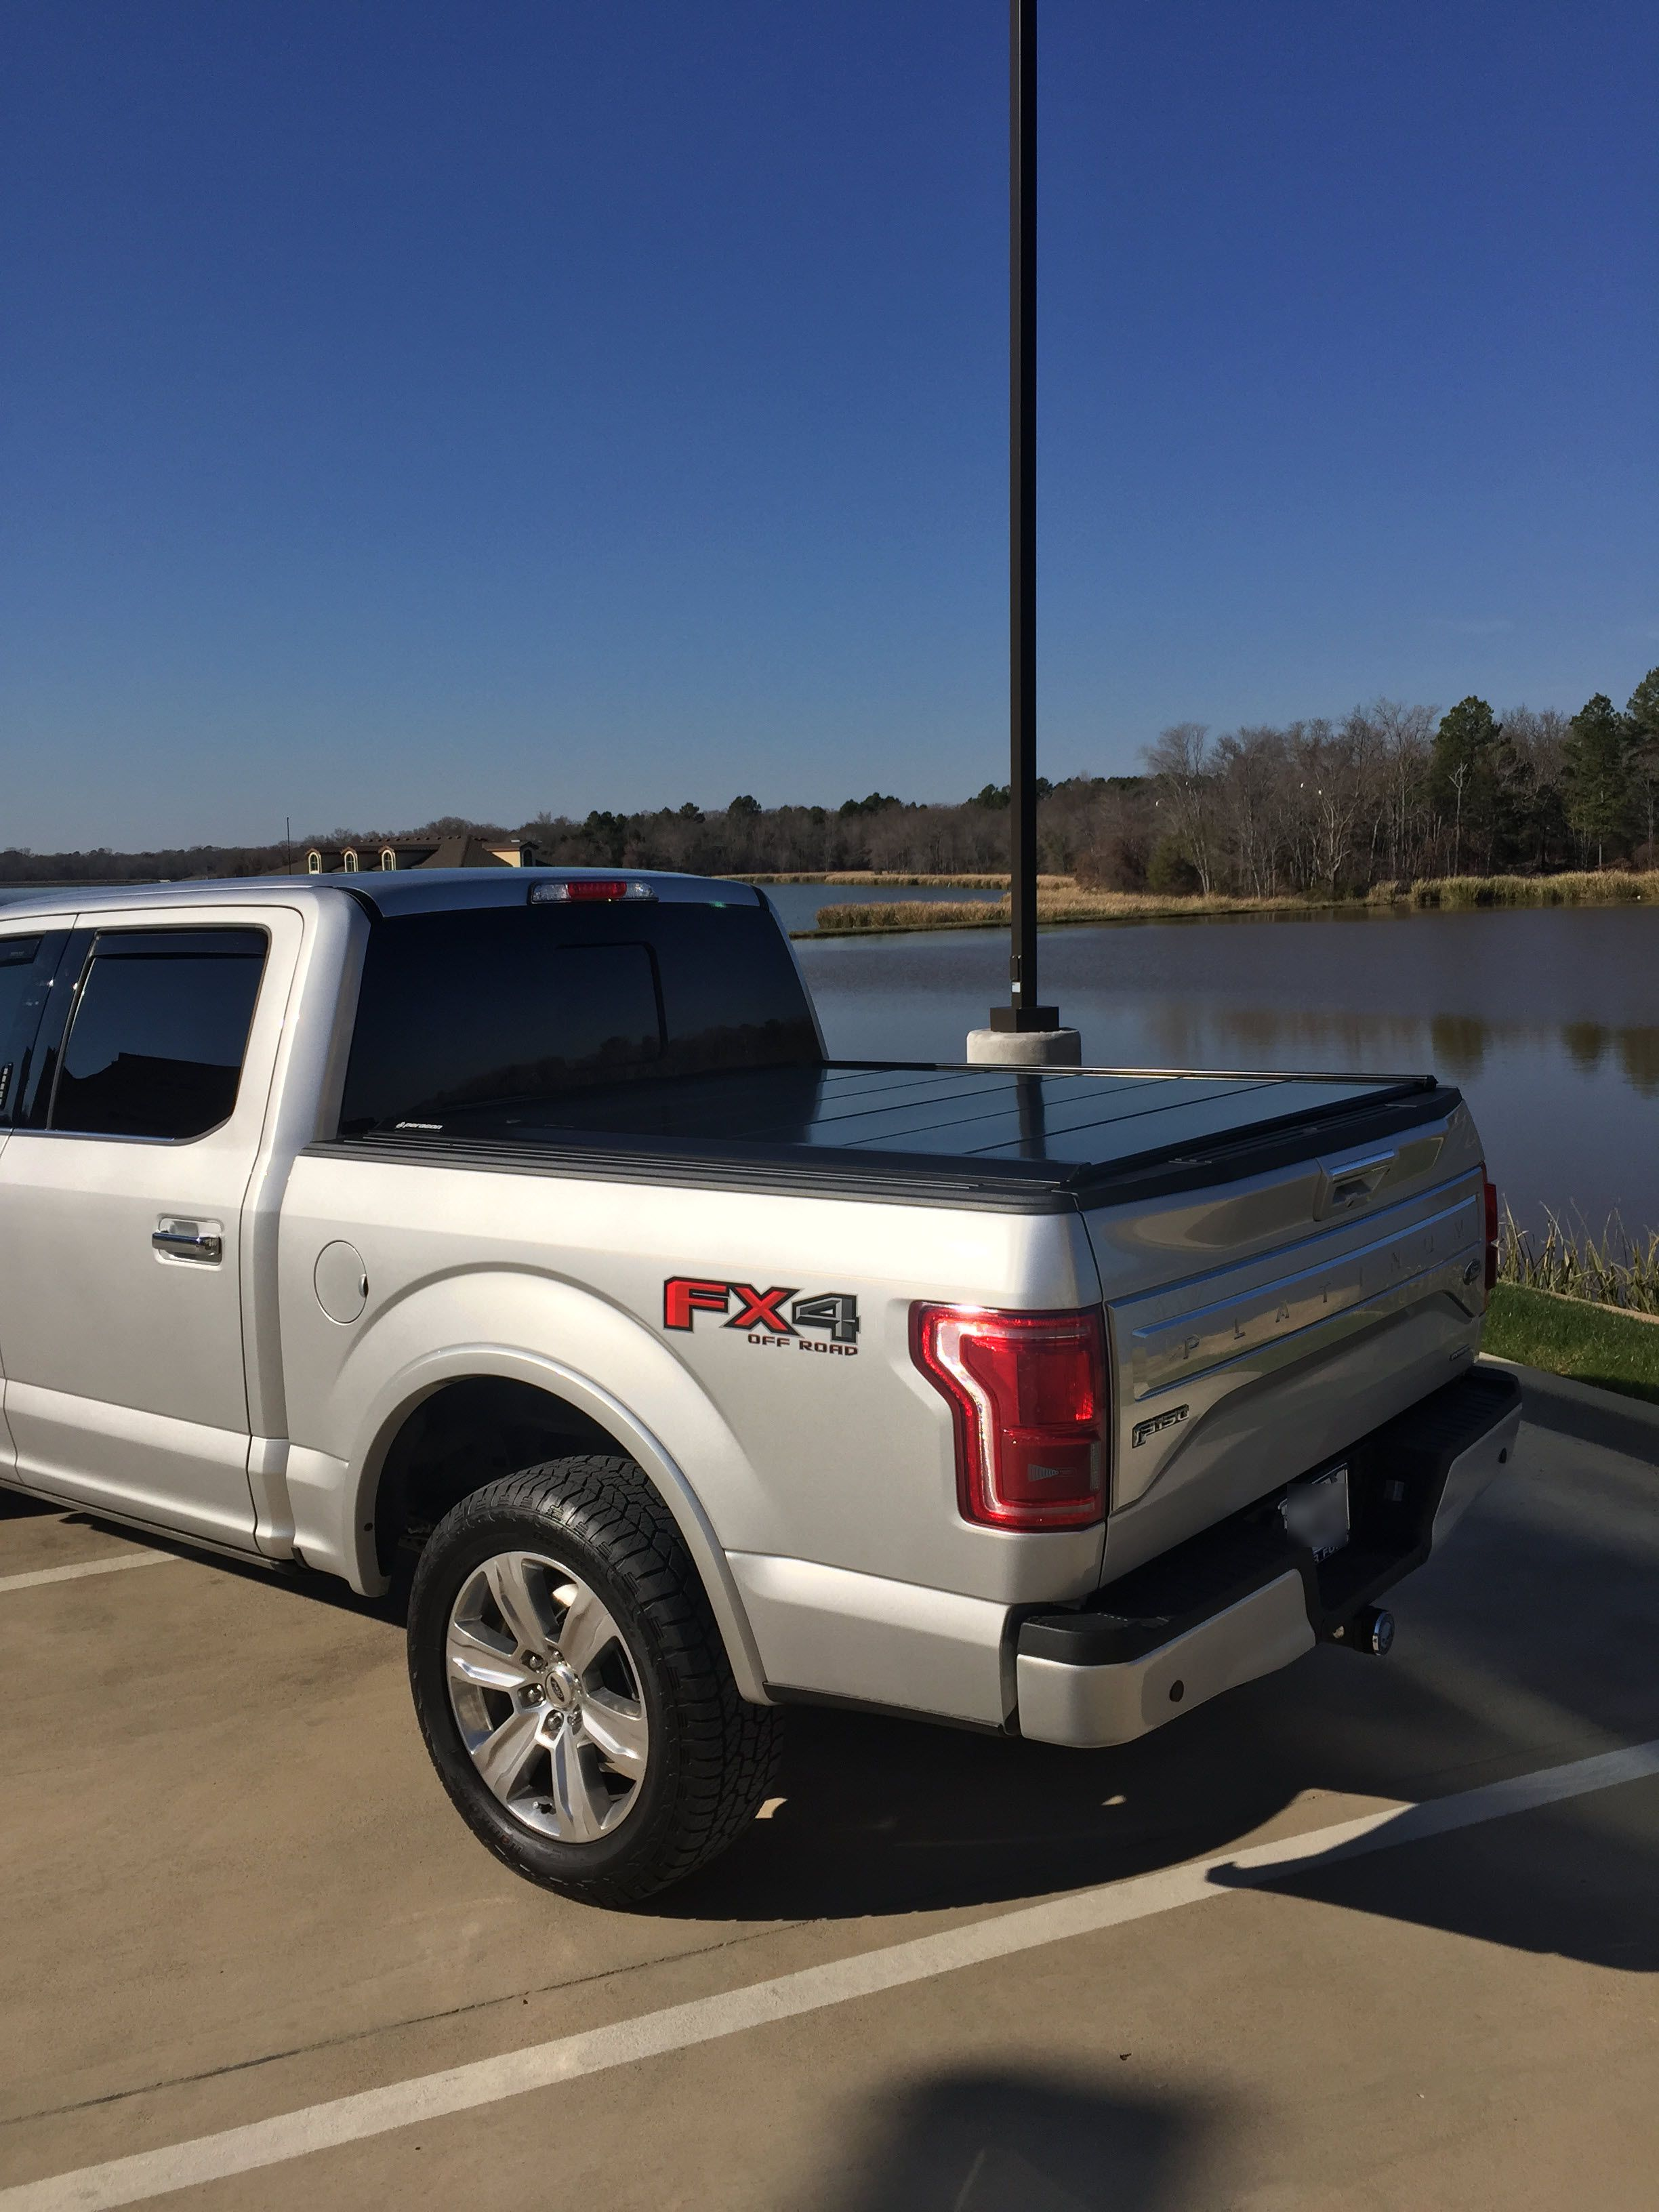 Ford F150 retractable tonneau cover on an Ingot Silver